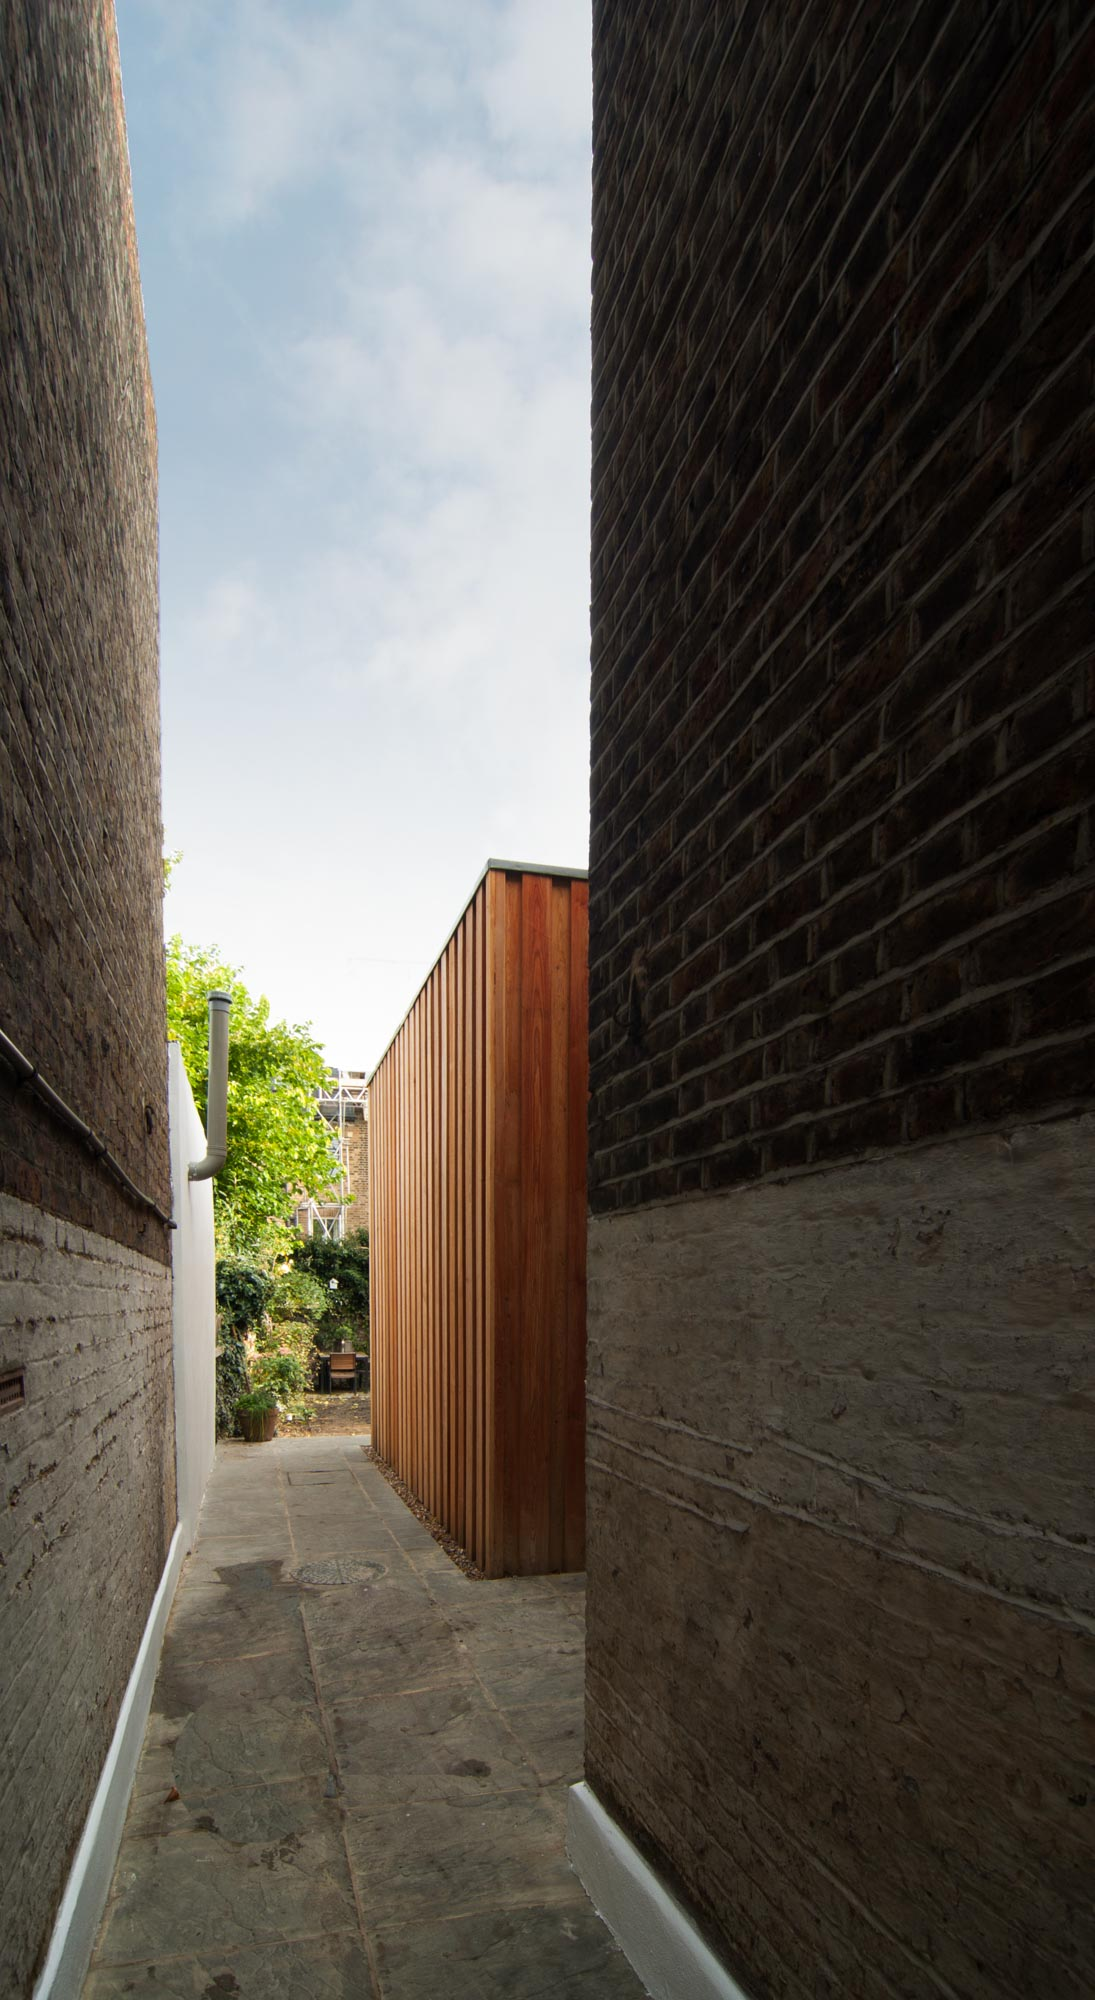 Brick wall and timber exterior of the rear extension in Stoke Newington.